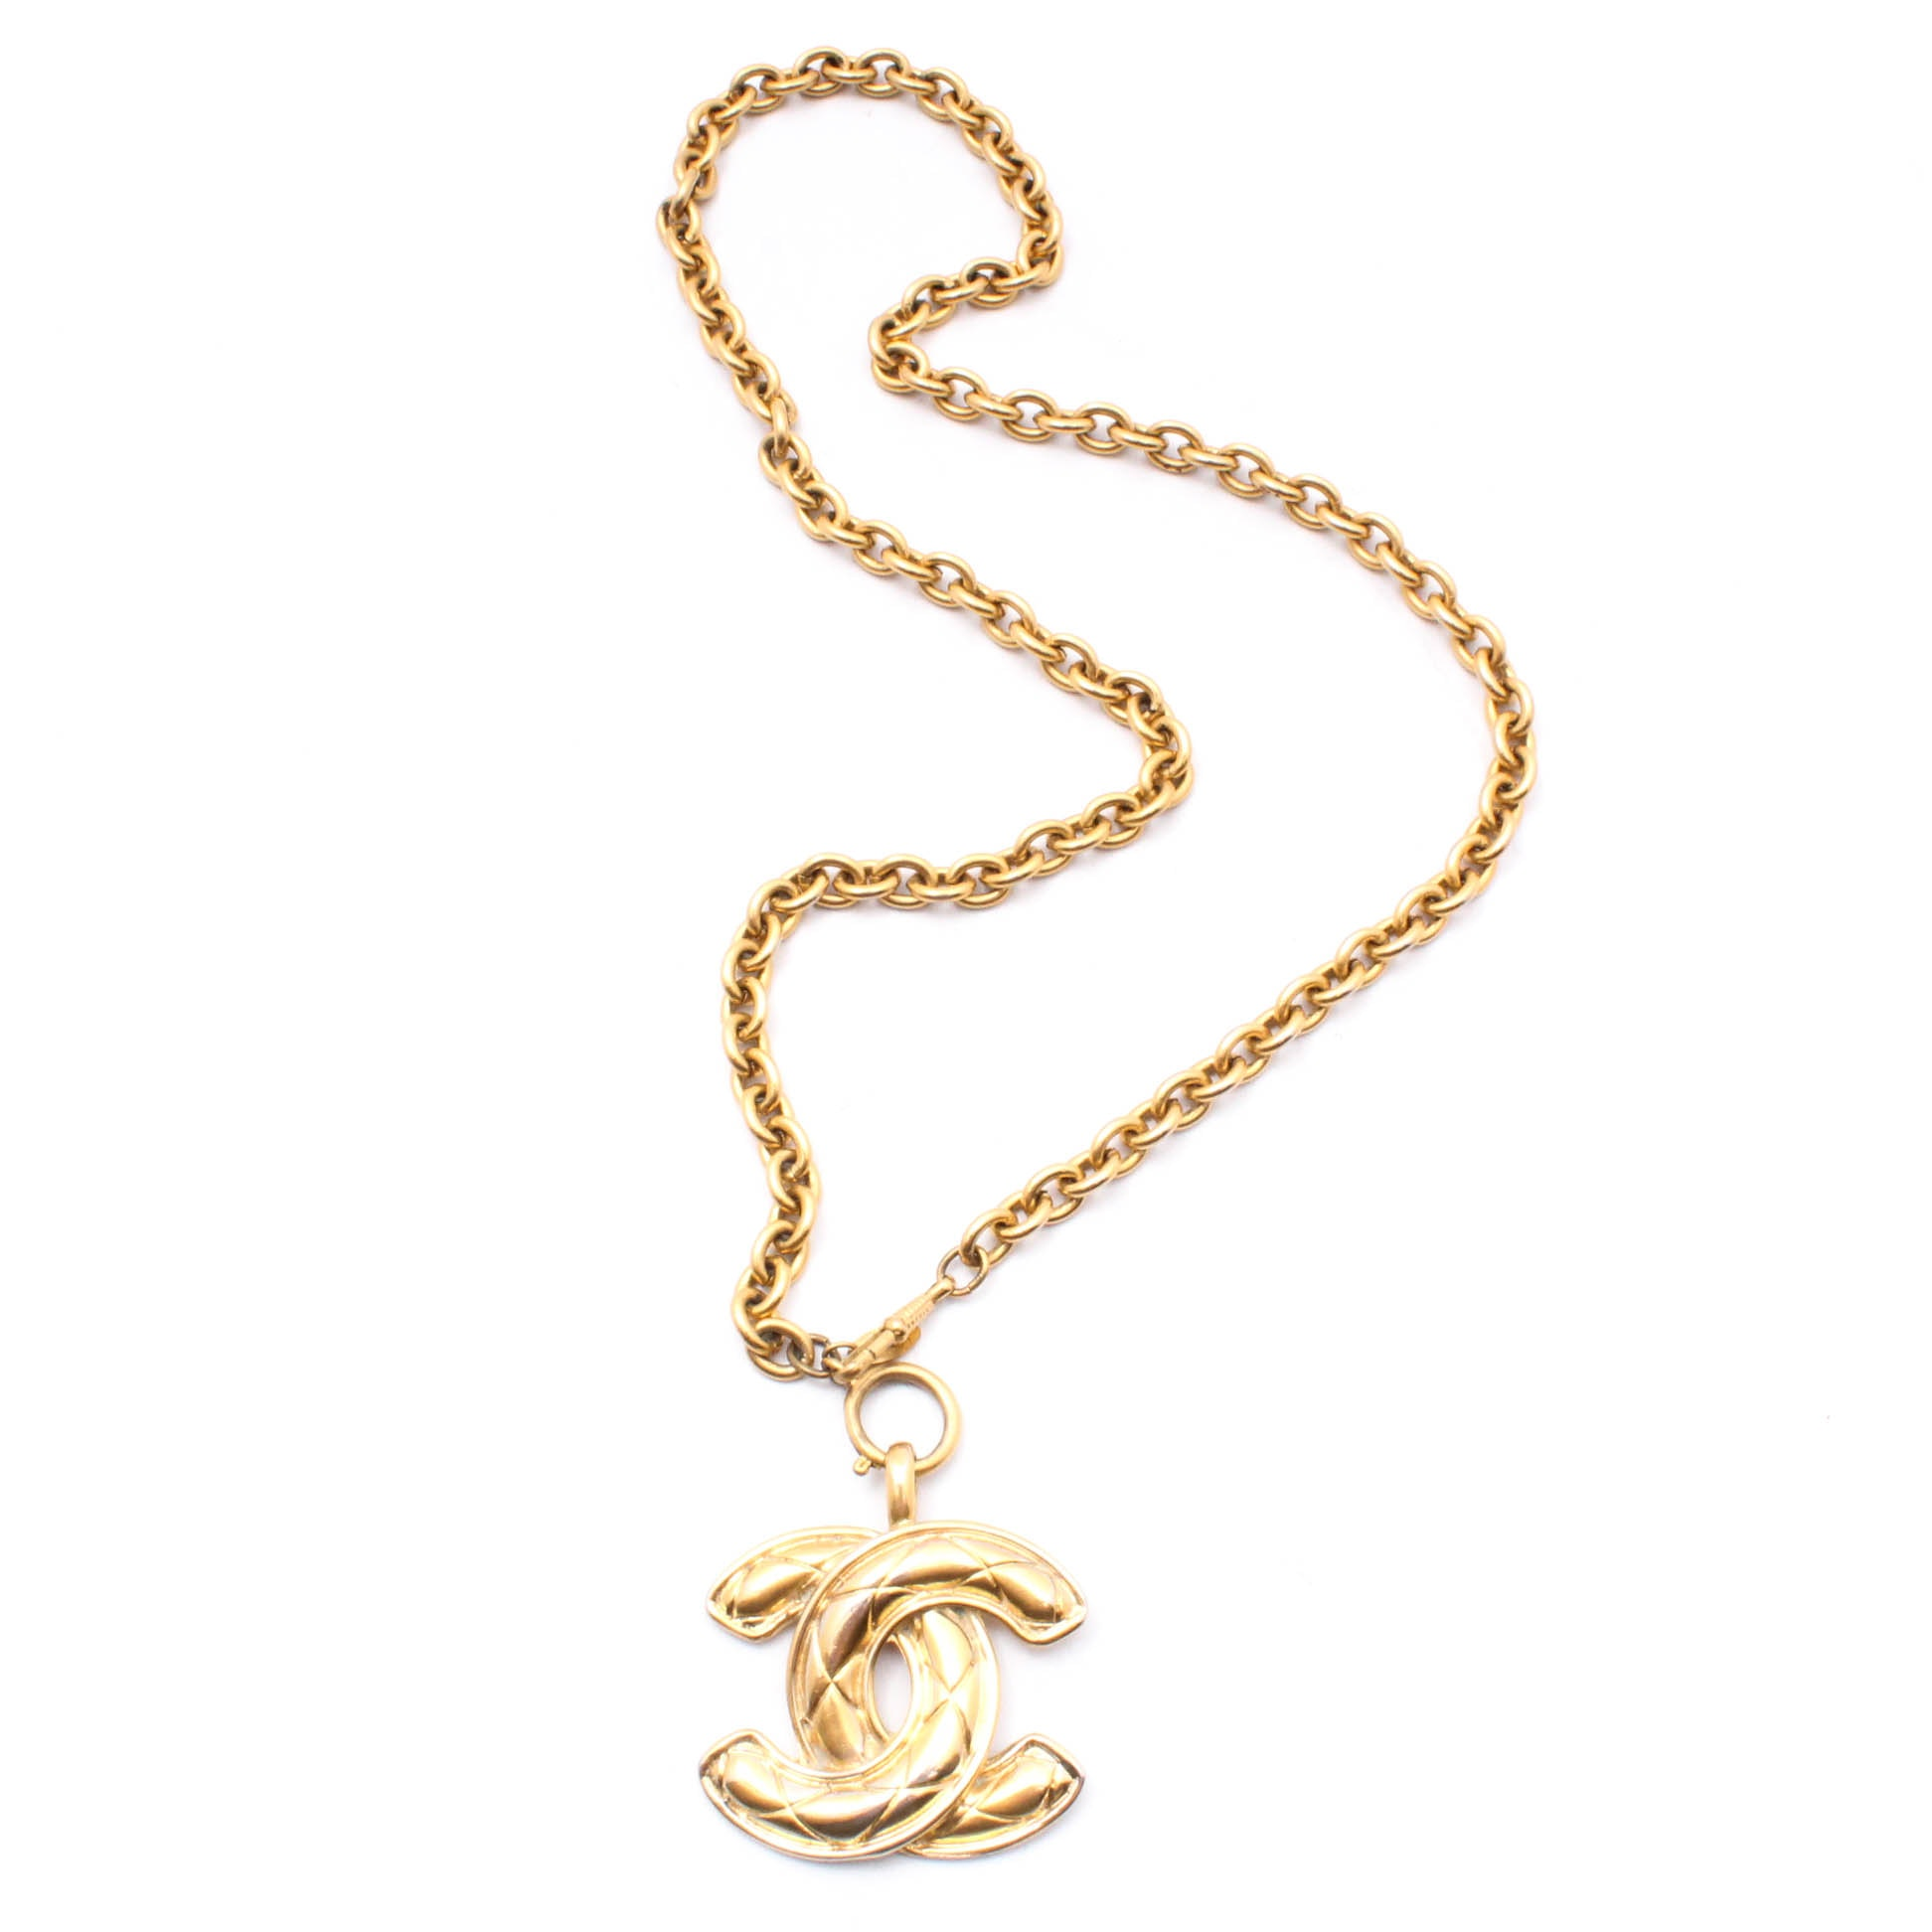 Chanel Gold Tone Necklace